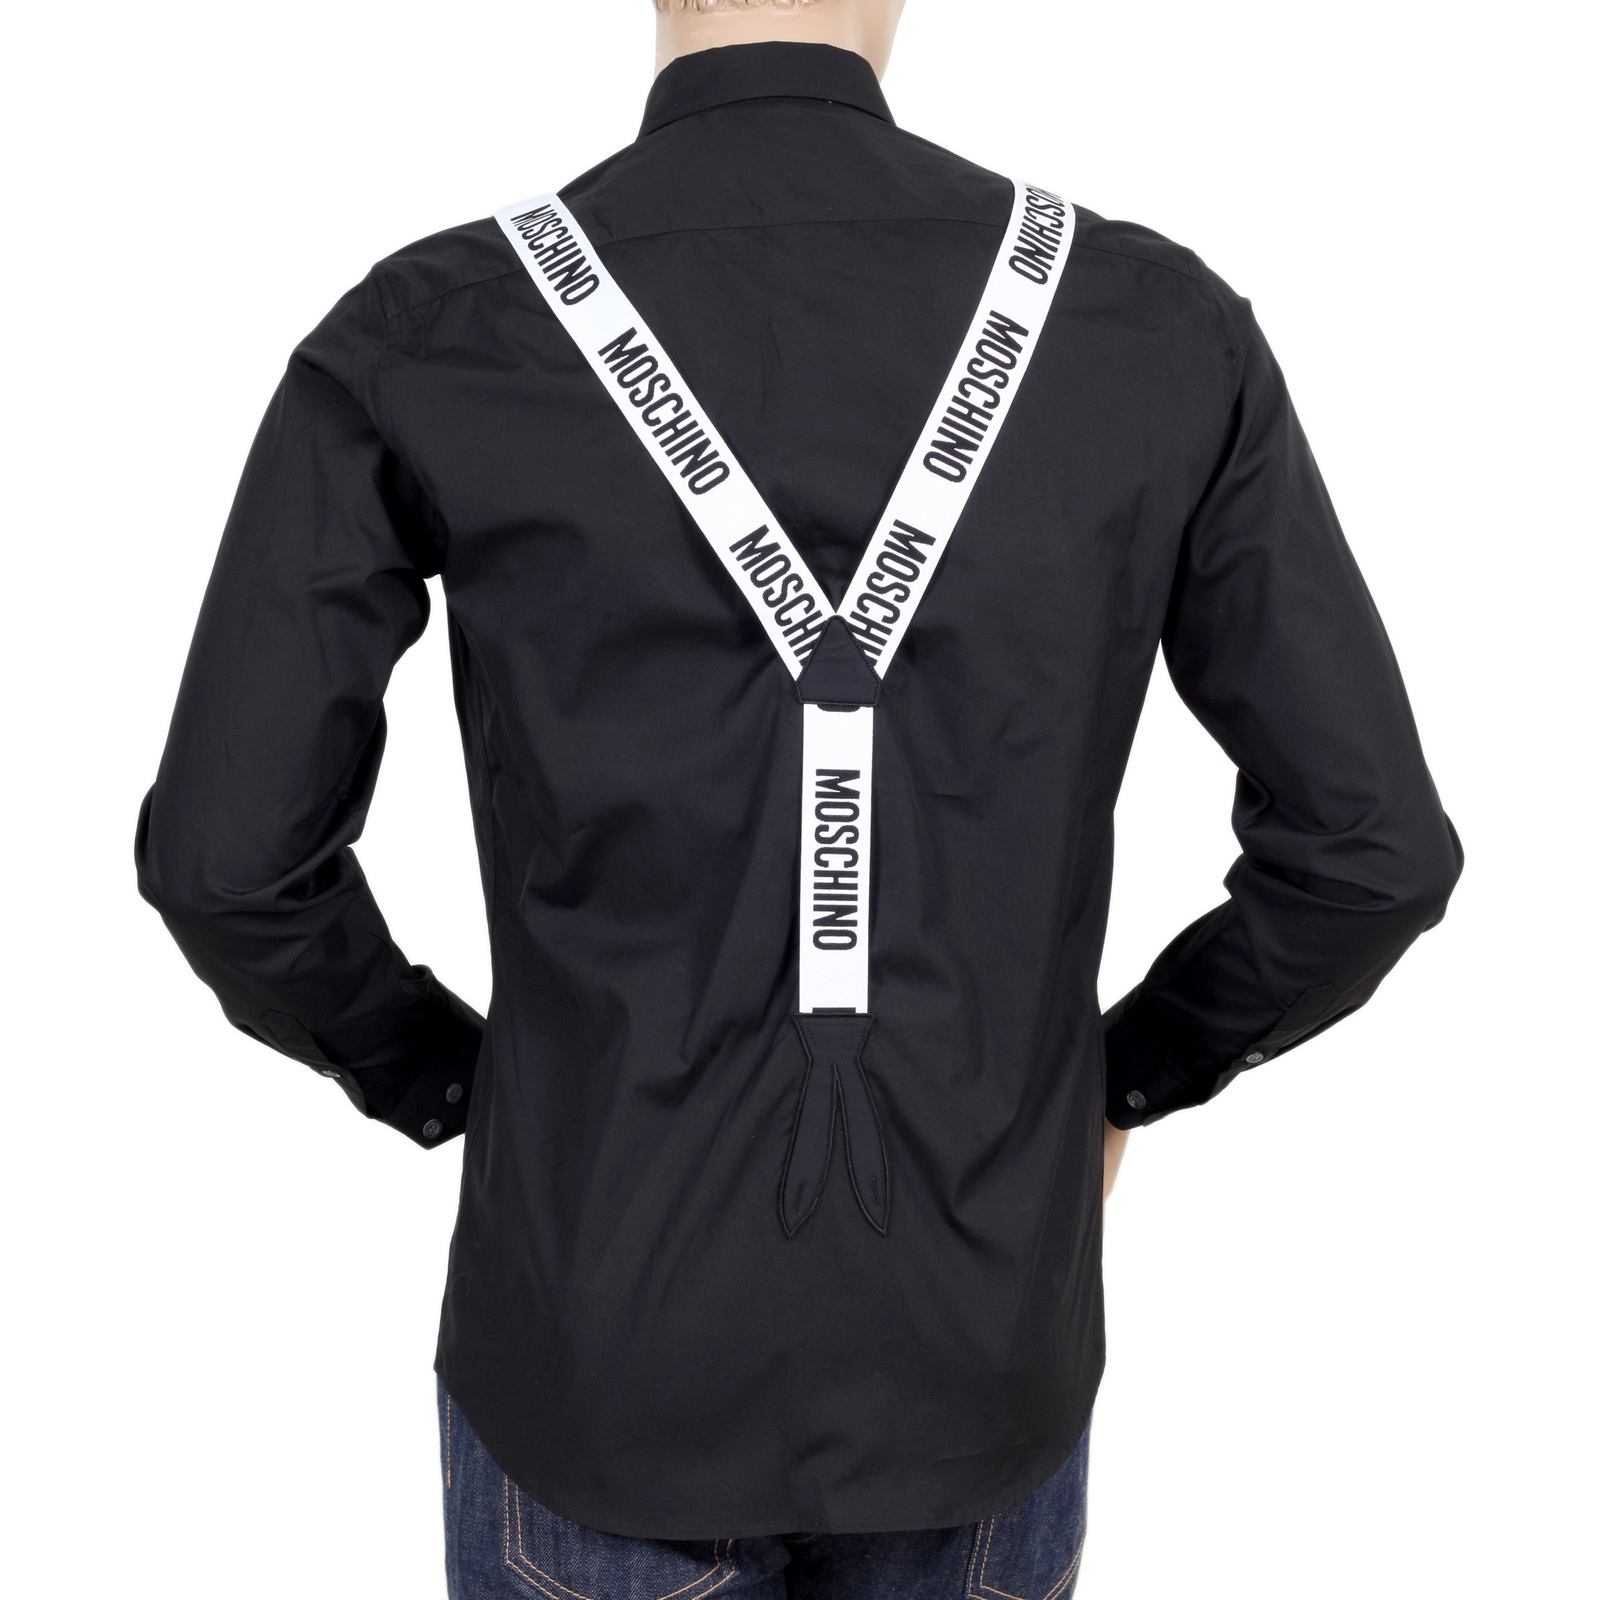 Black t shirt with white collar - Moschino Long Sleeve Black Slim Fit Shirt With Faux Braces In White Mosm4801